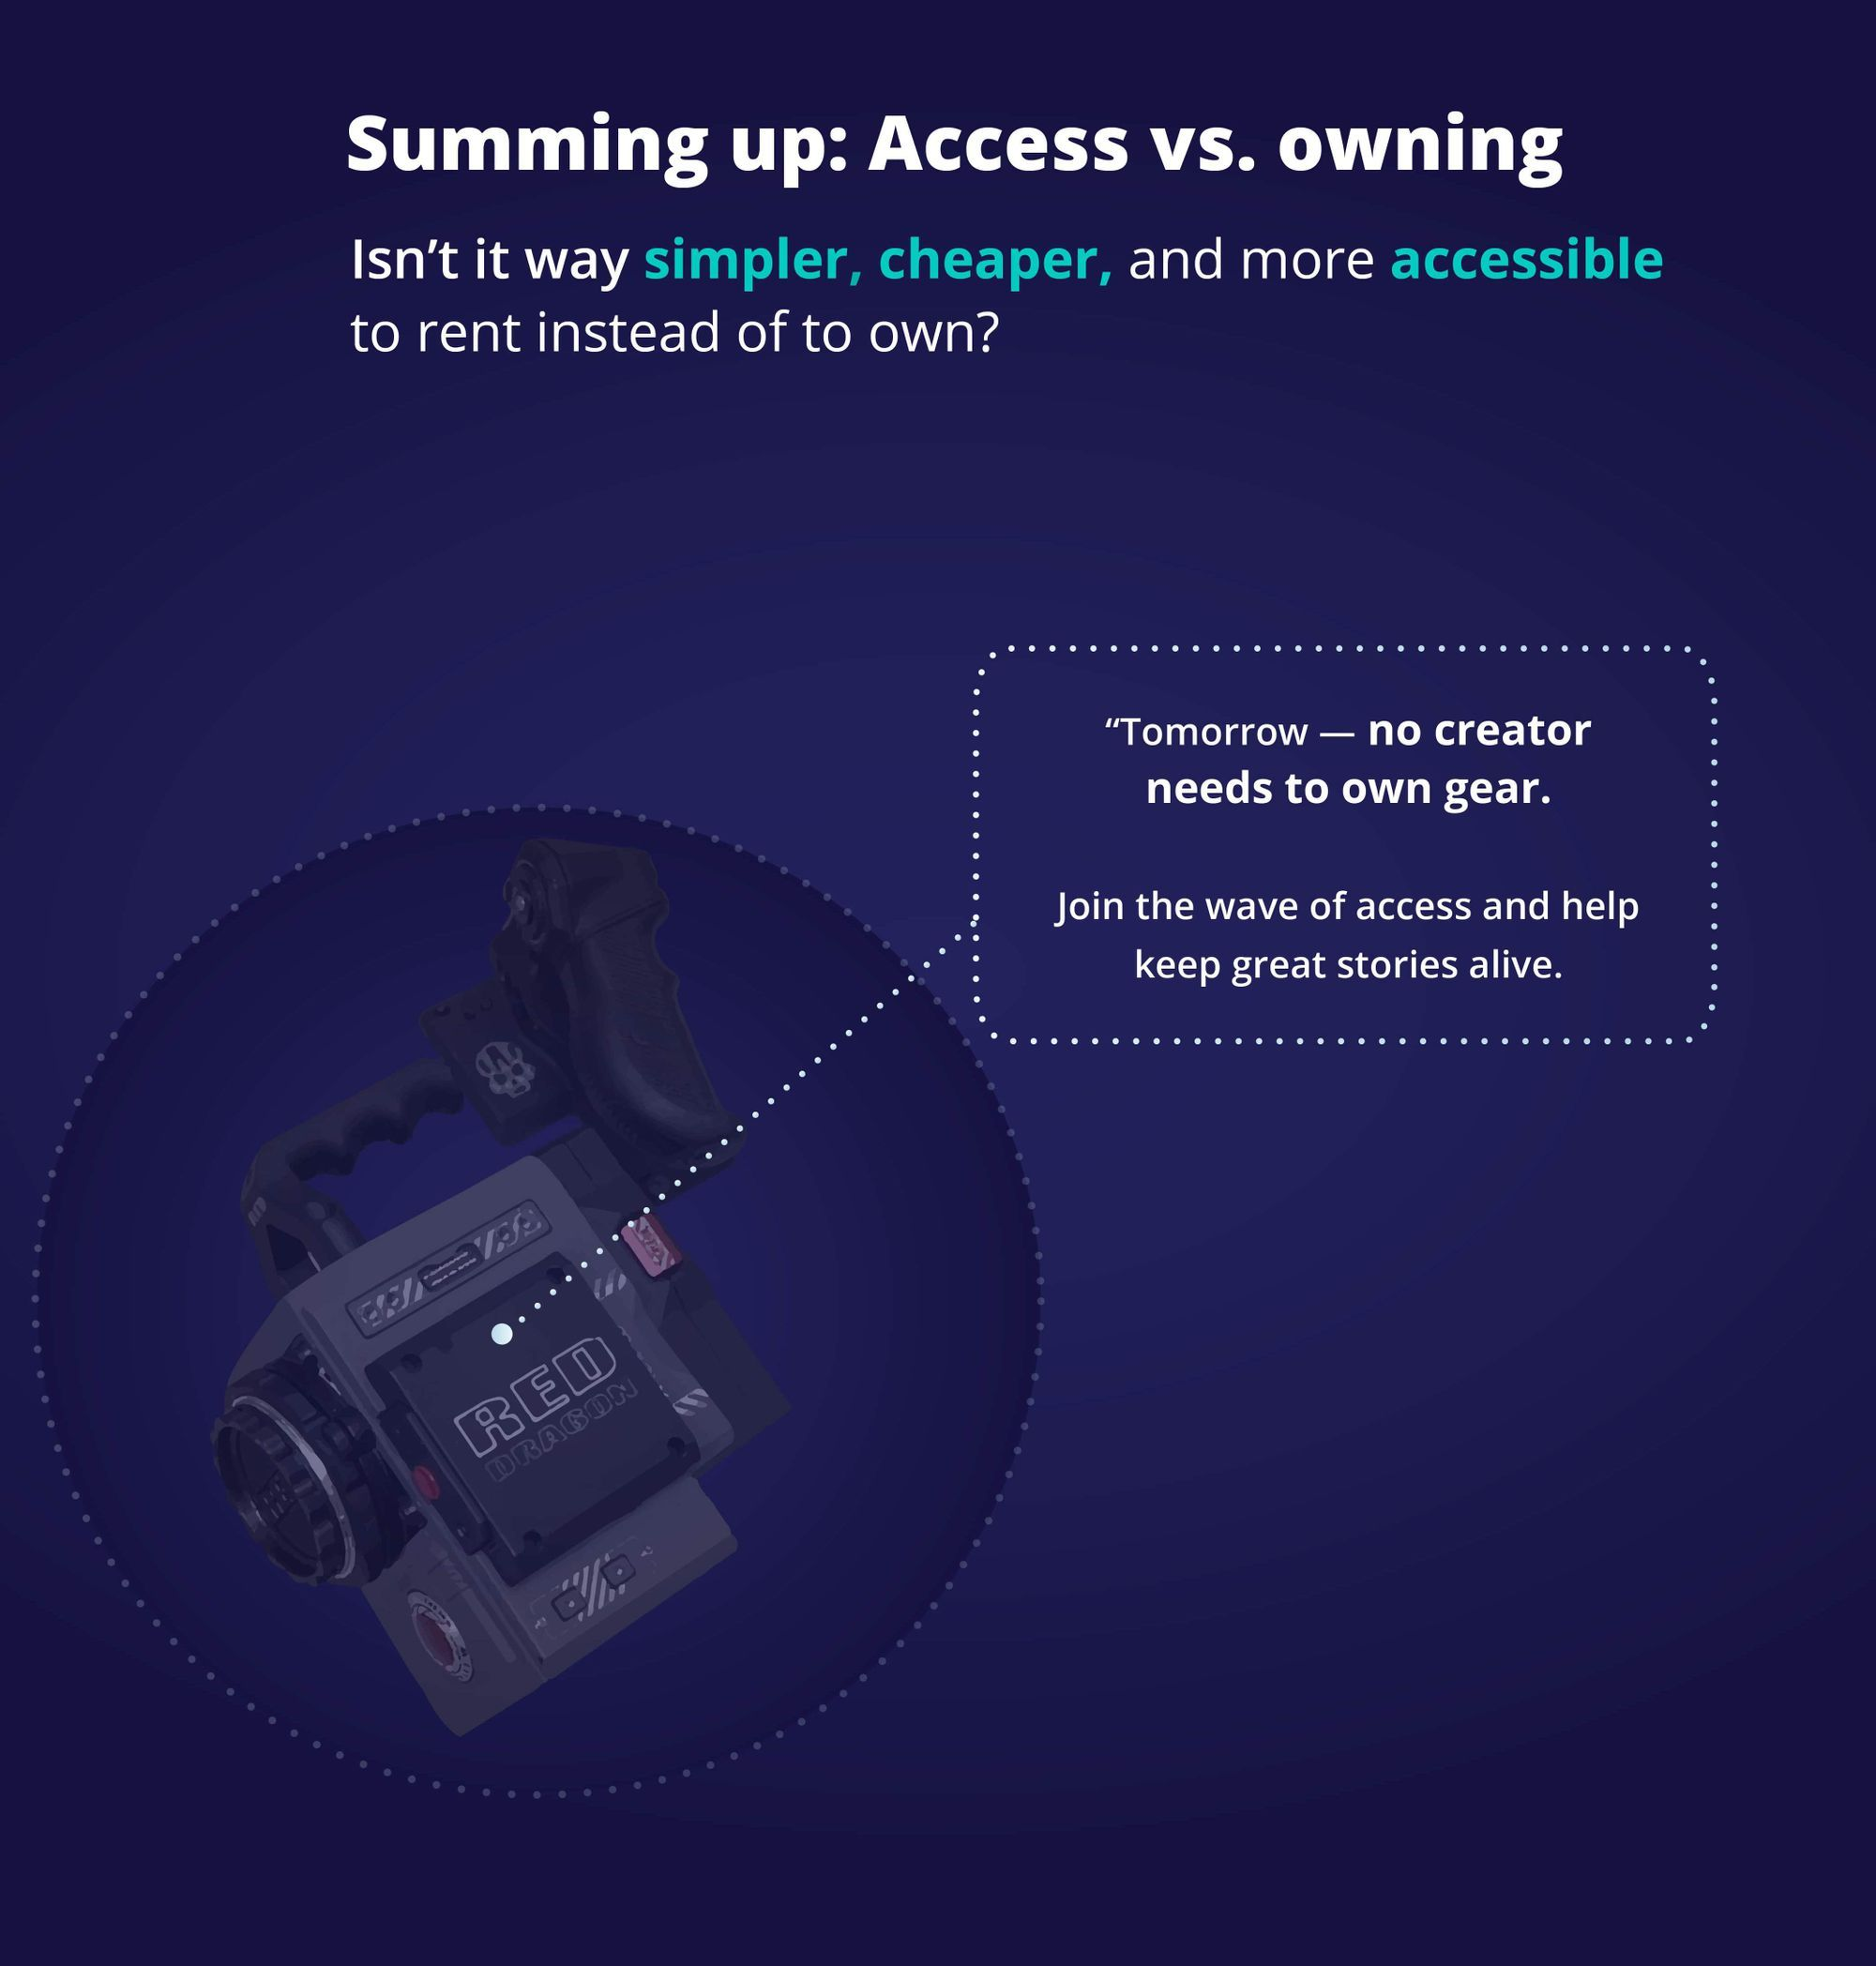 Summing up access vs owning: Tomorrow no filmmaker or creator will own a camera.